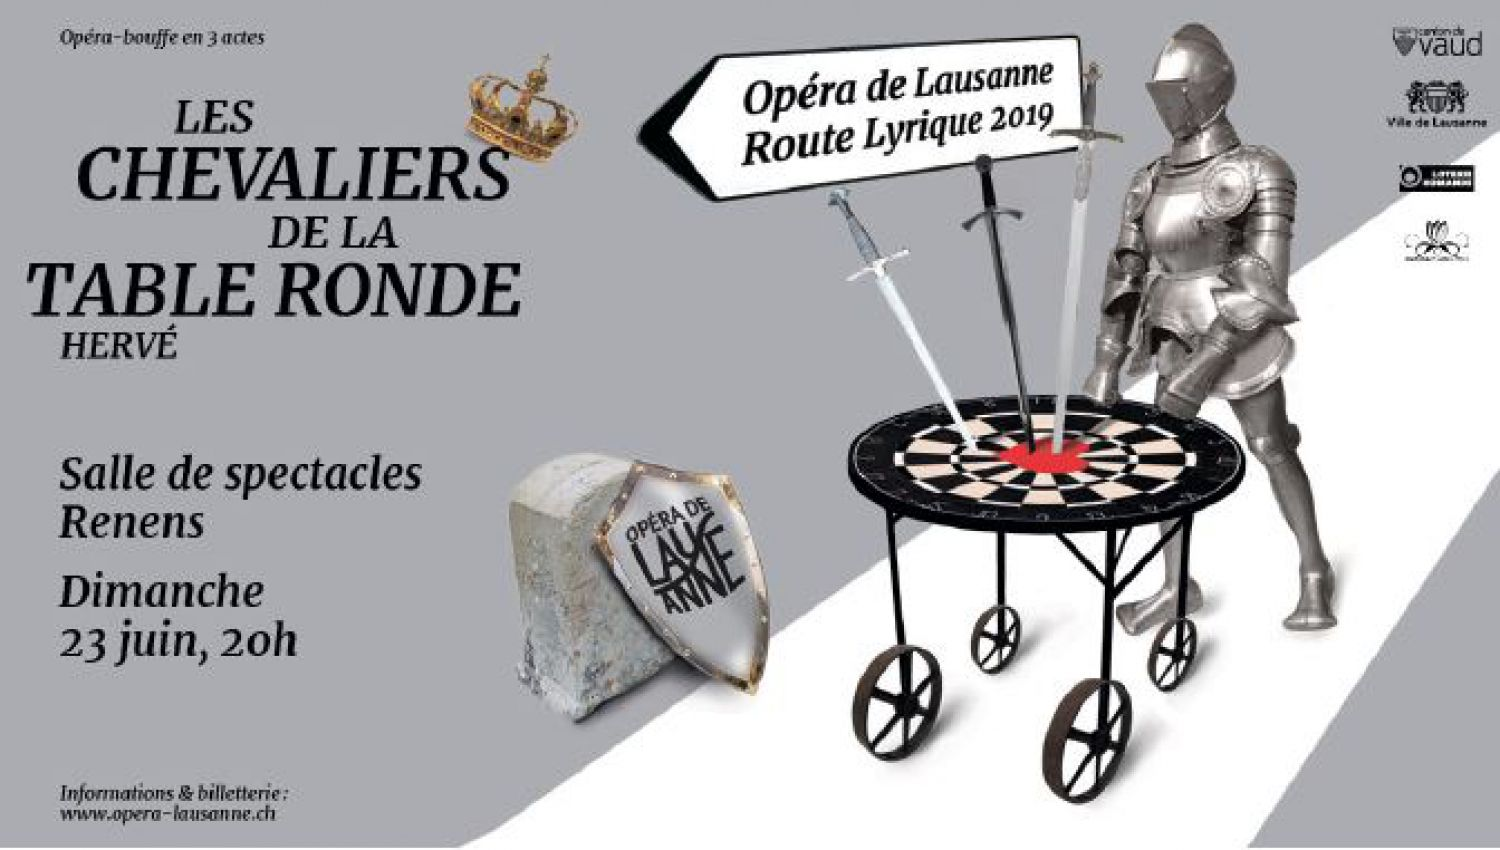 Saison musicale - La Route lyrique, les Chevaliers de la Table ronde